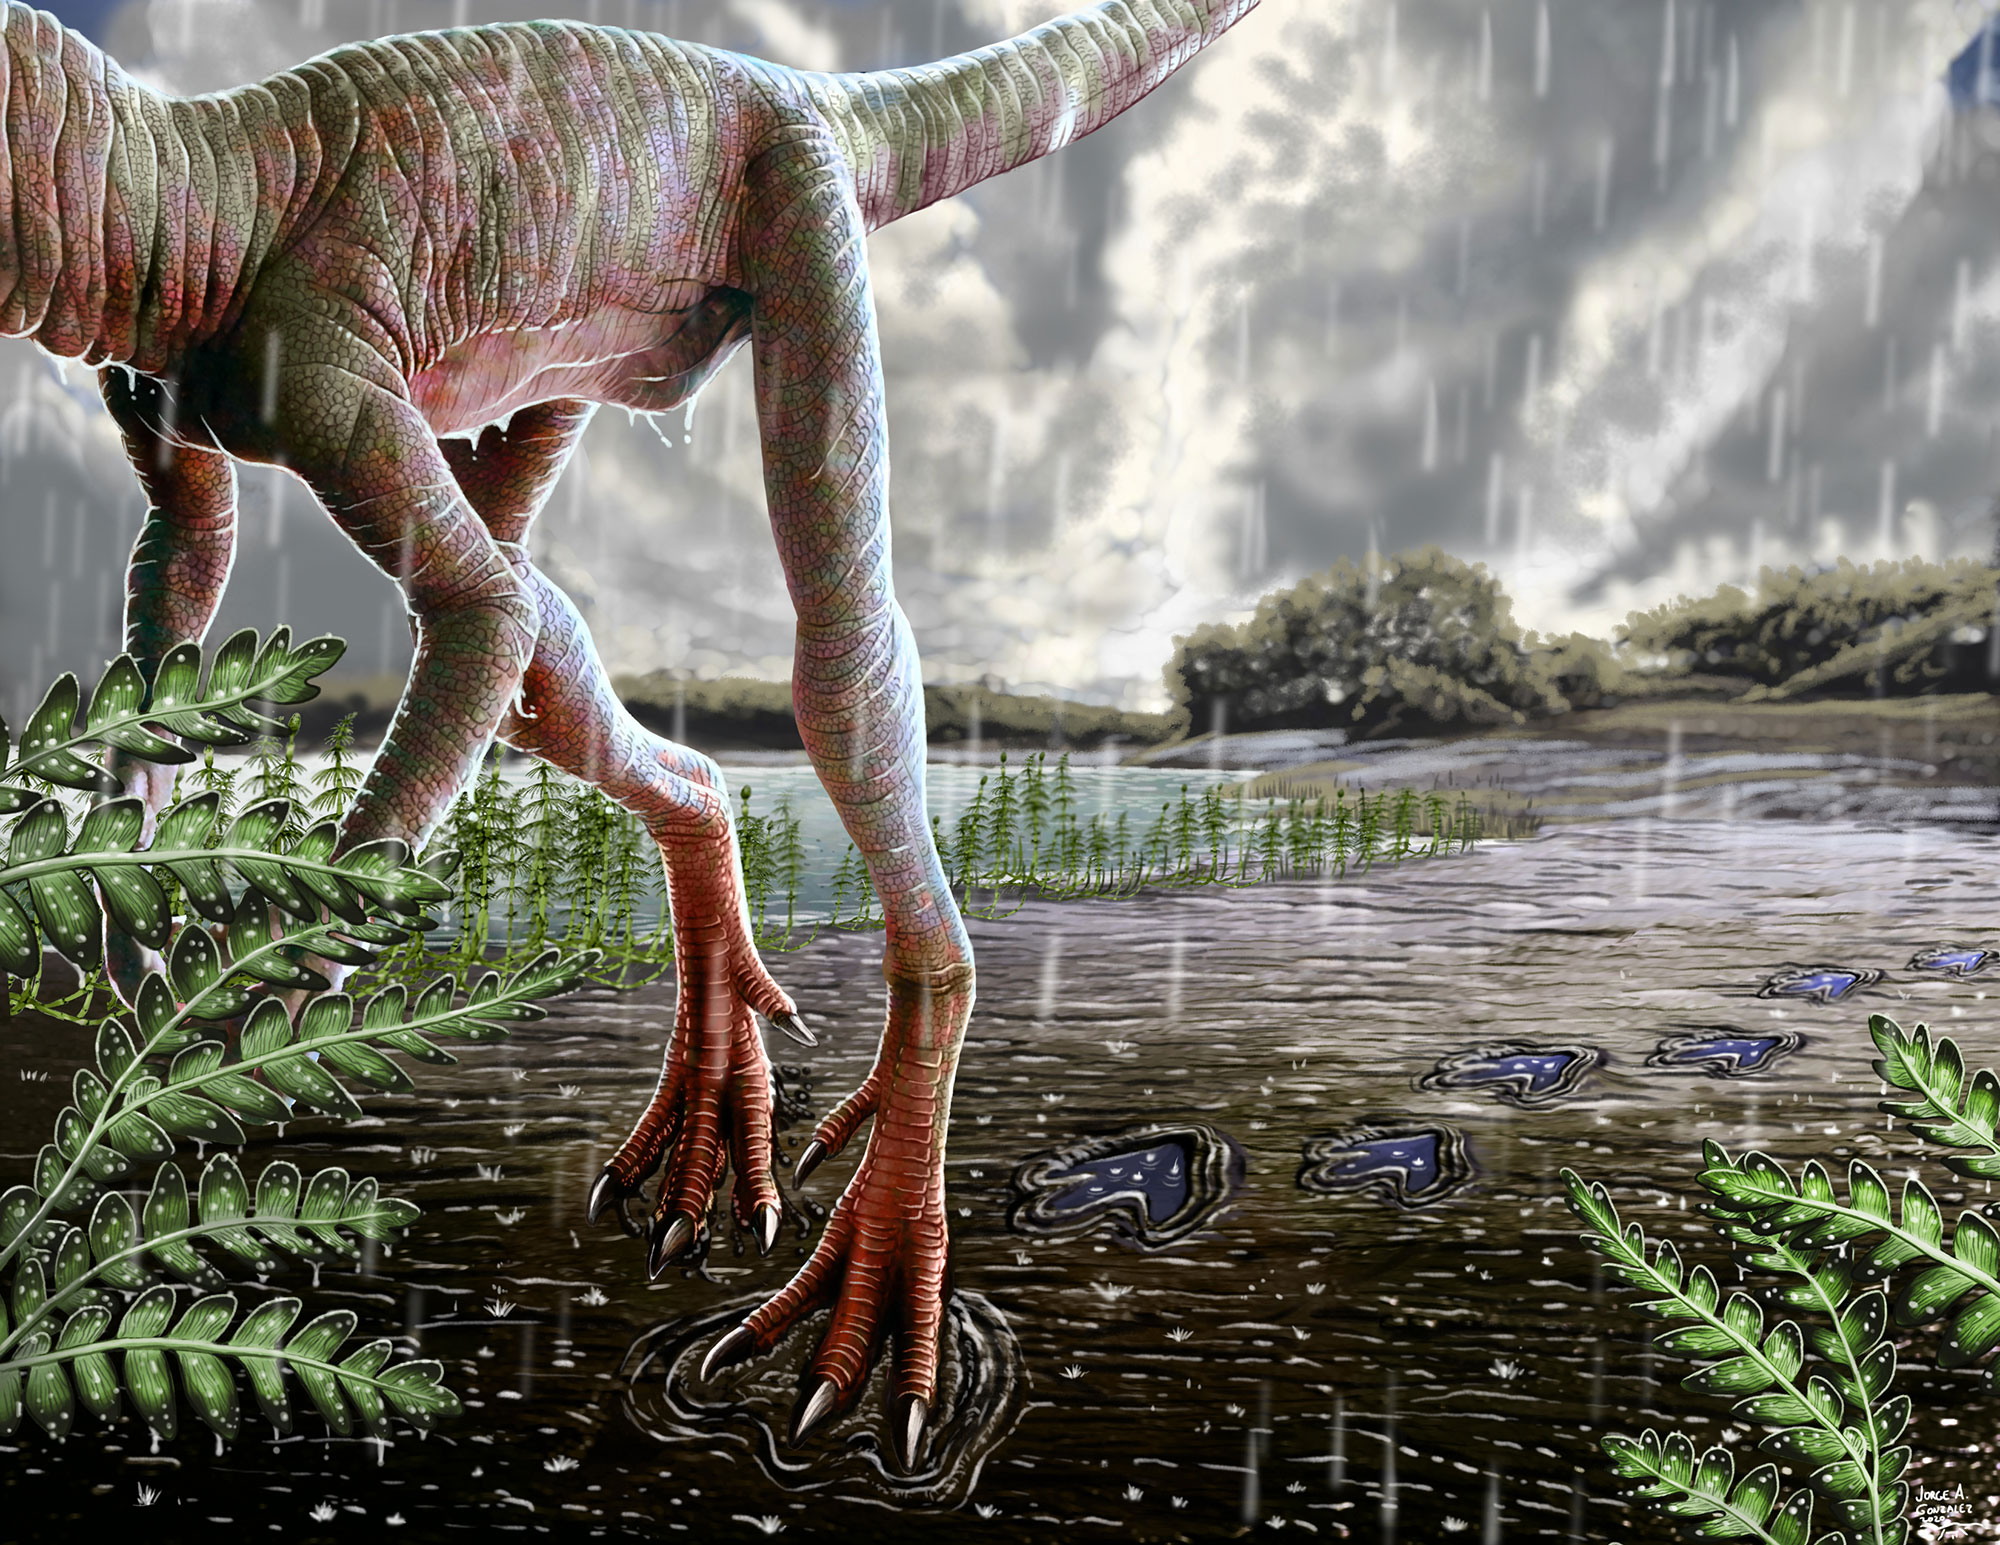 An illustration that imagines what the dinosaur-like creature looked like while leaving the footprint millions of years ago. It's feet look like giant chicken feet - three toed with claws. Ferns are scattered in the background.